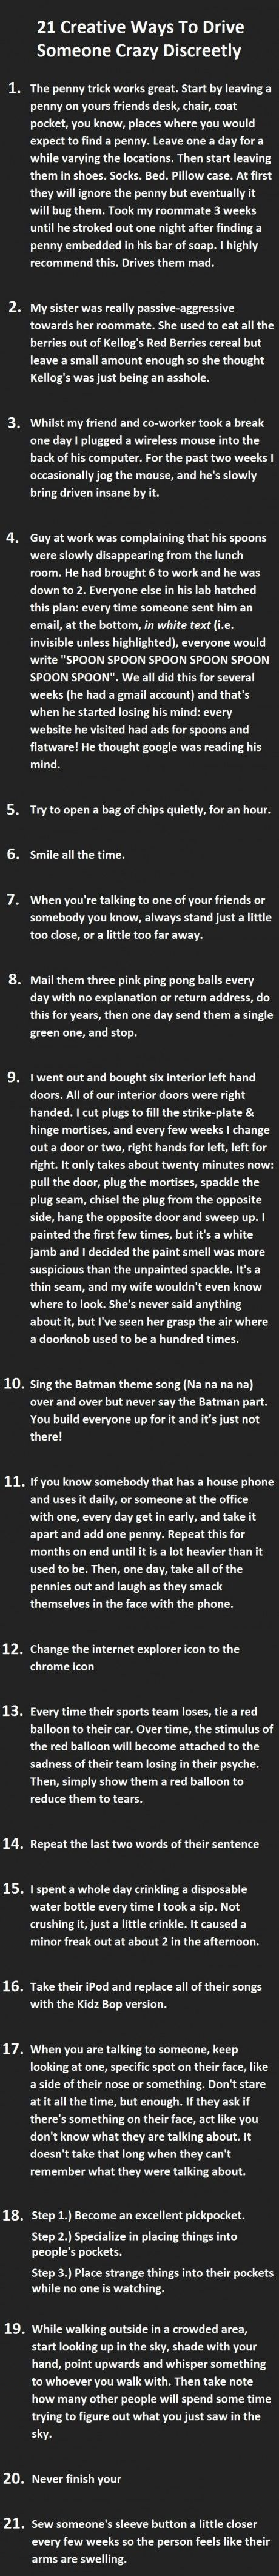 Number 8 would be awesome to do